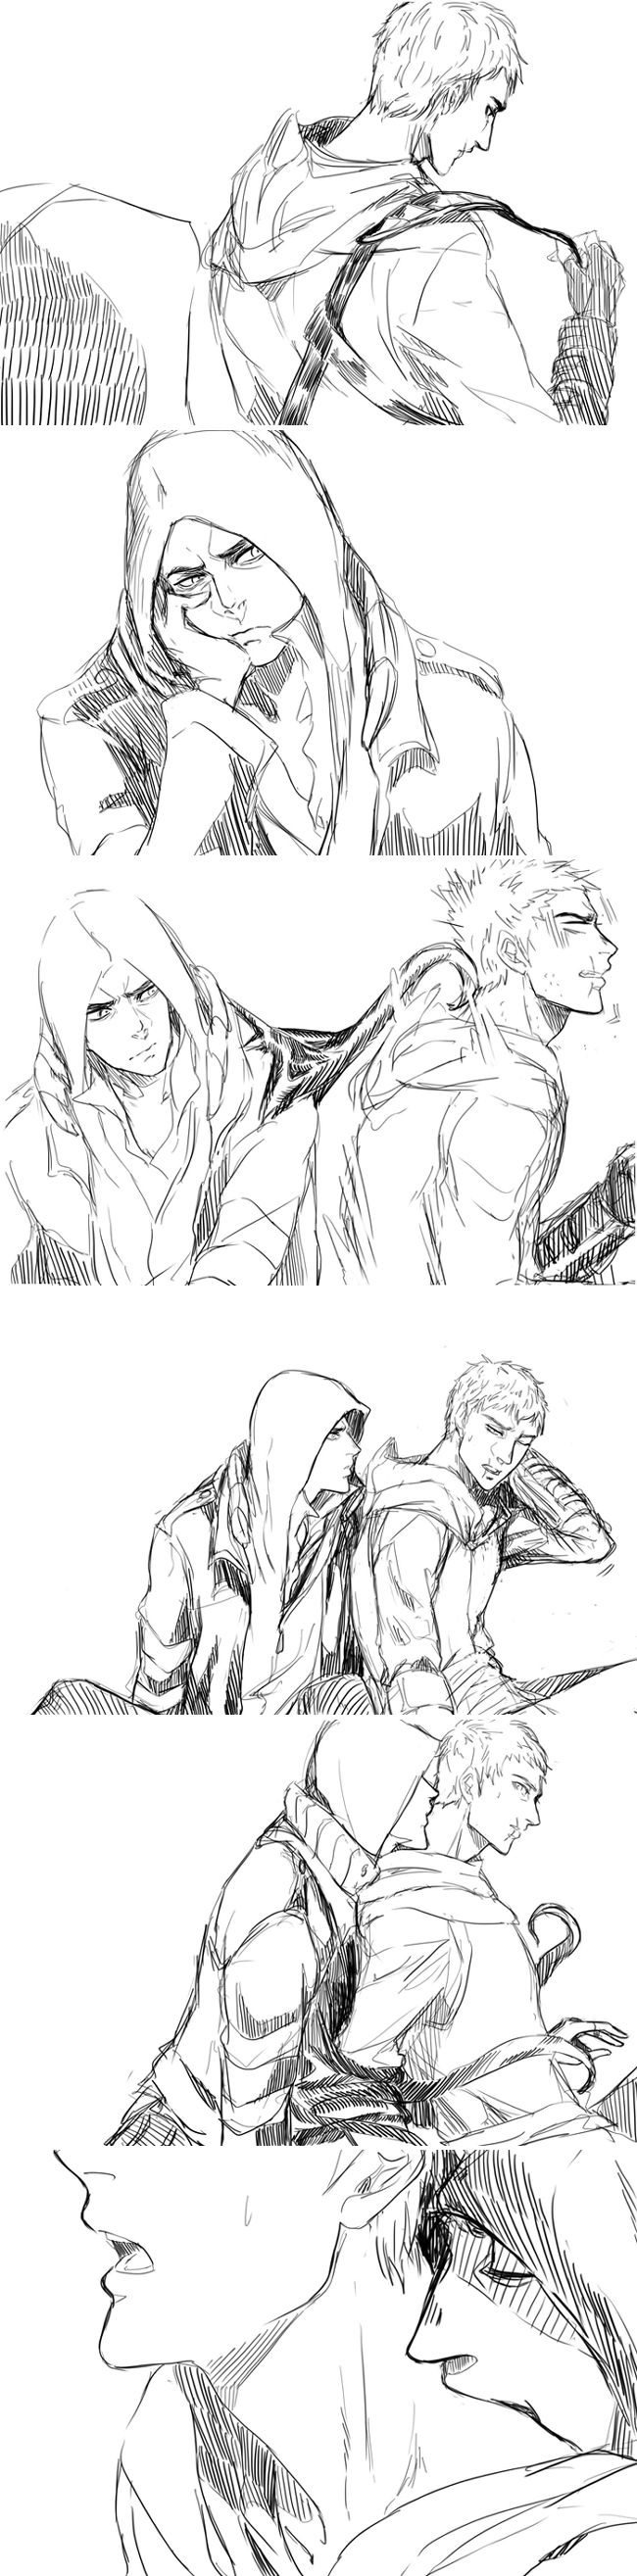 (BL) Alex/Altair doodle 47 by Kyu3118